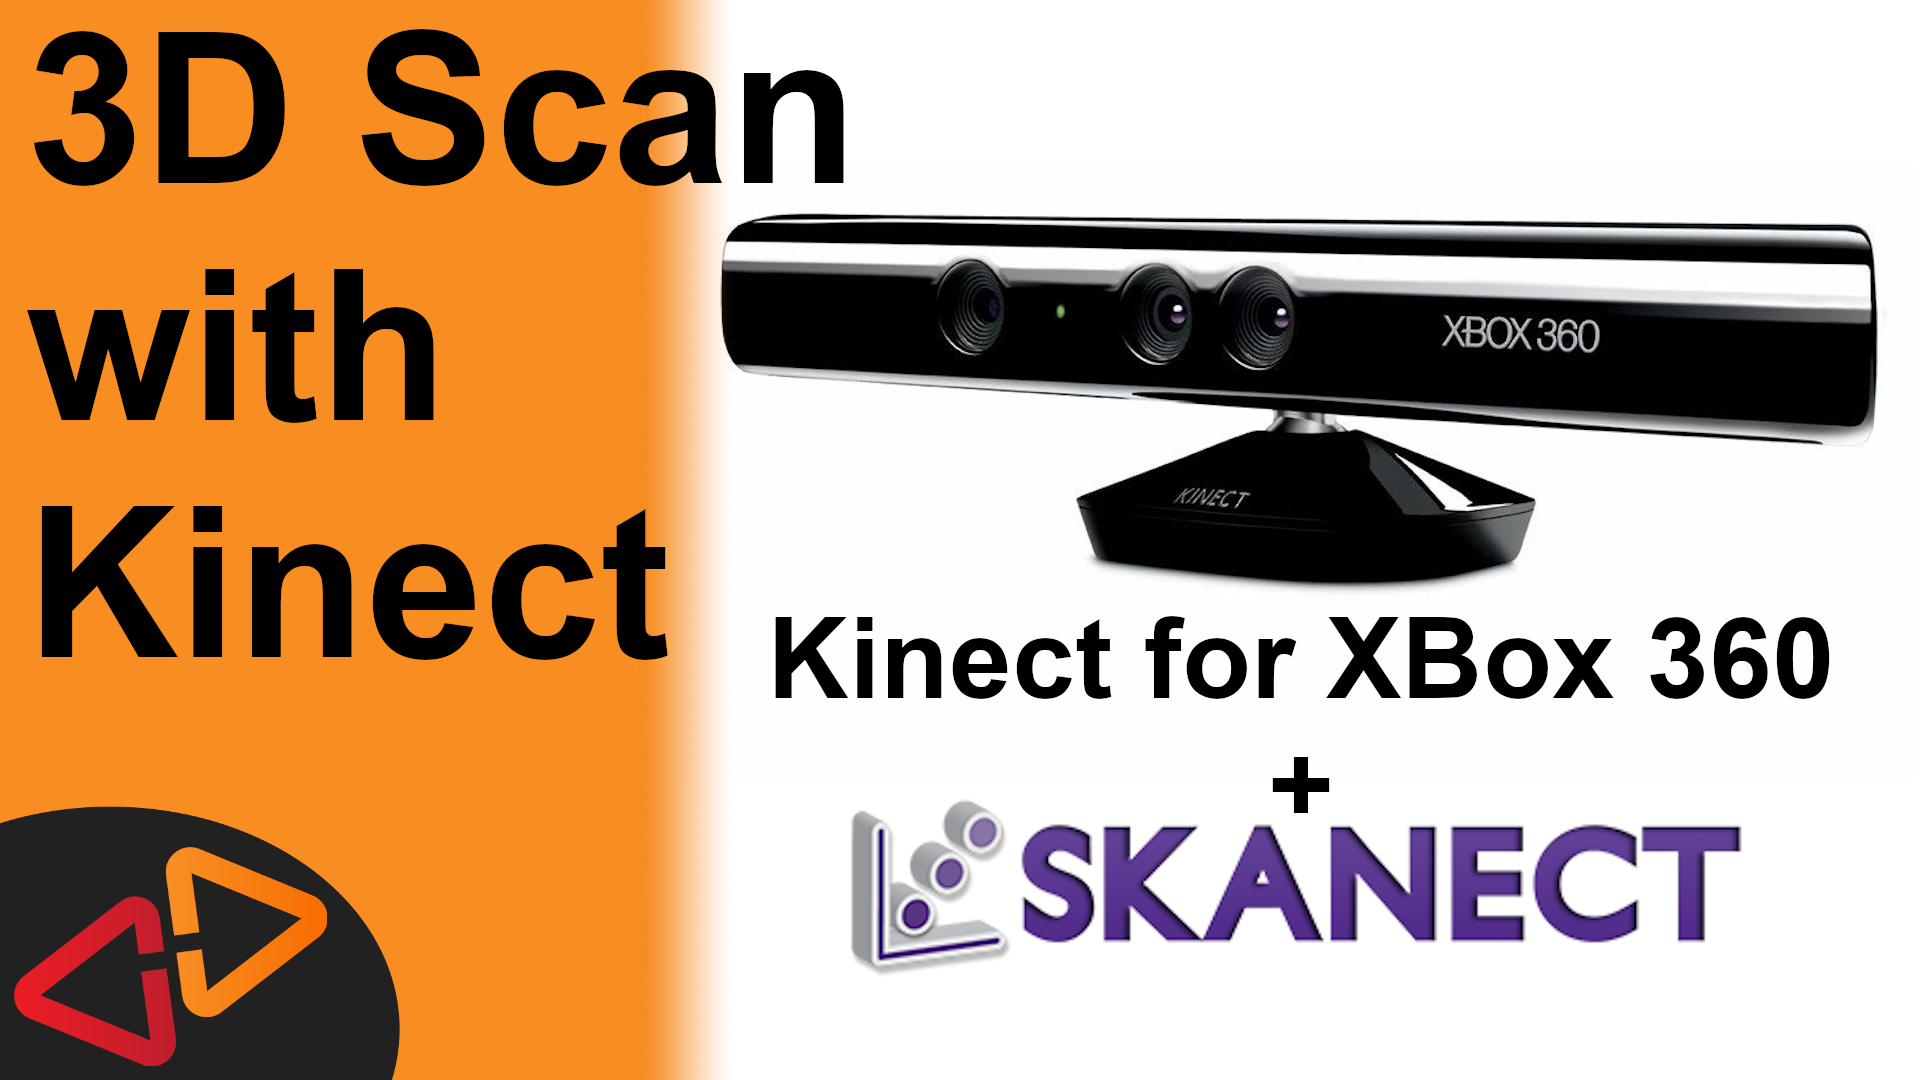 3D Scanning with XBox 360 Kinect and Skanect – Crosslink 3D